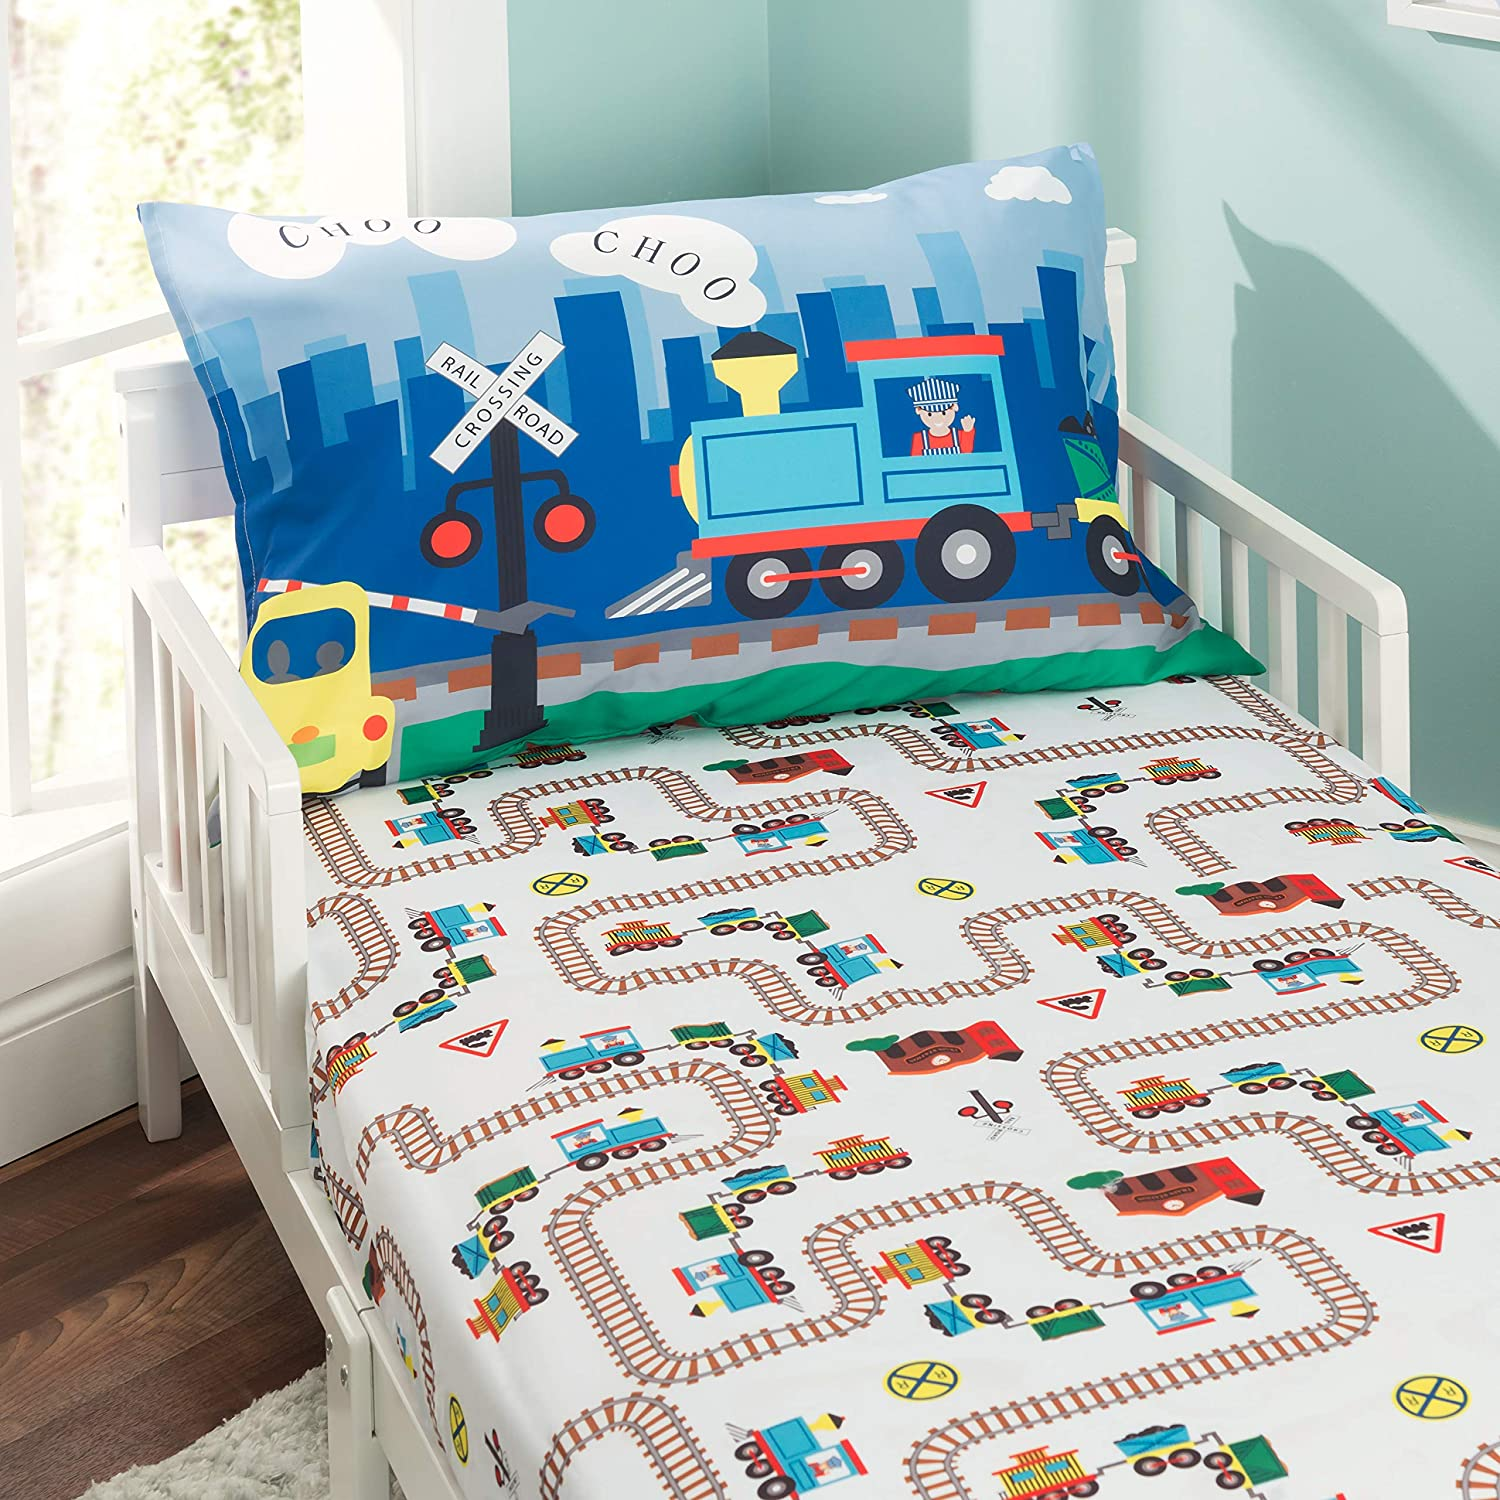 Breathable And Hypoallergenic Boys Toddler Sheets Set Police Toddler Bed Sheets Everyday Kids 3 Piece Toddler Fitted Sheet Fire And Rescue Soft Microfiber Flat Sheet And Pillowcase Set Bedding Sets